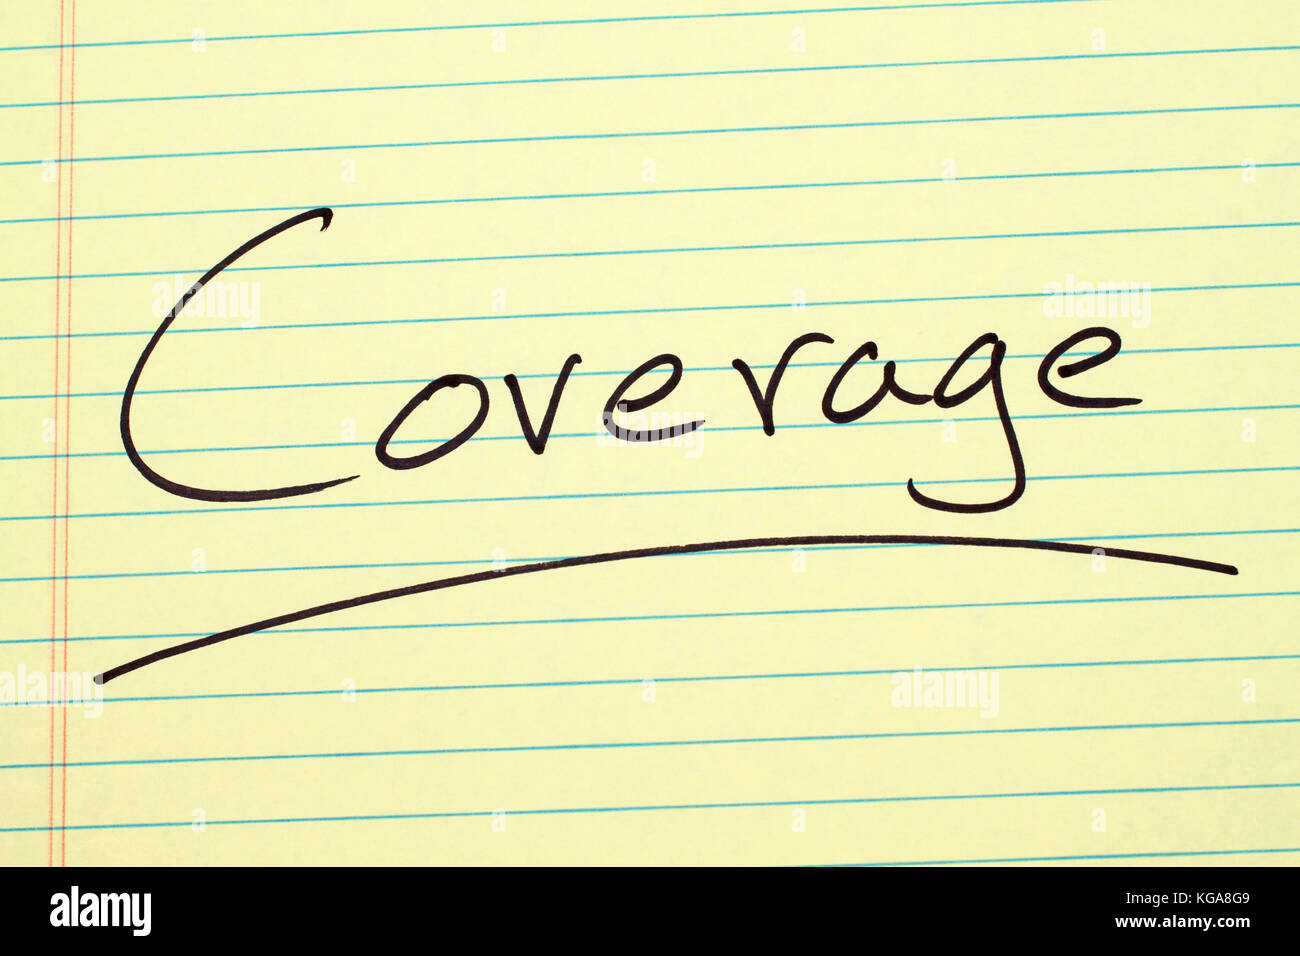 The word 'Coverage' underlined on a yellow legal pad - Stock Image